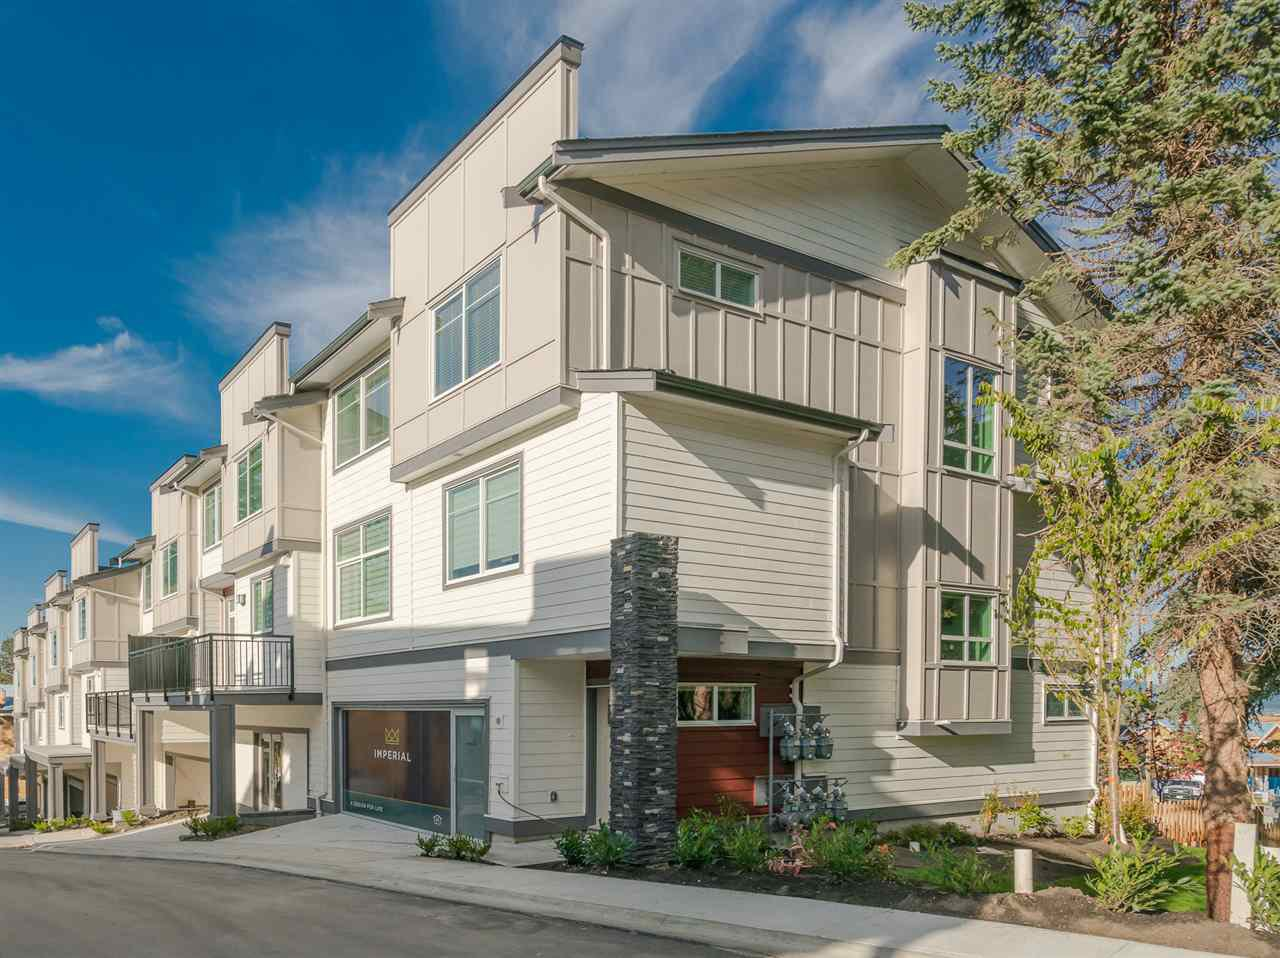 """Main Photo: 3 15633 MOUNTAIN VIEW Drive in Surrey: Grandview Surrey Townhouse for sale in """"Imperial"""" (South Surrey White Rock)  : MLS®# R2221268"""